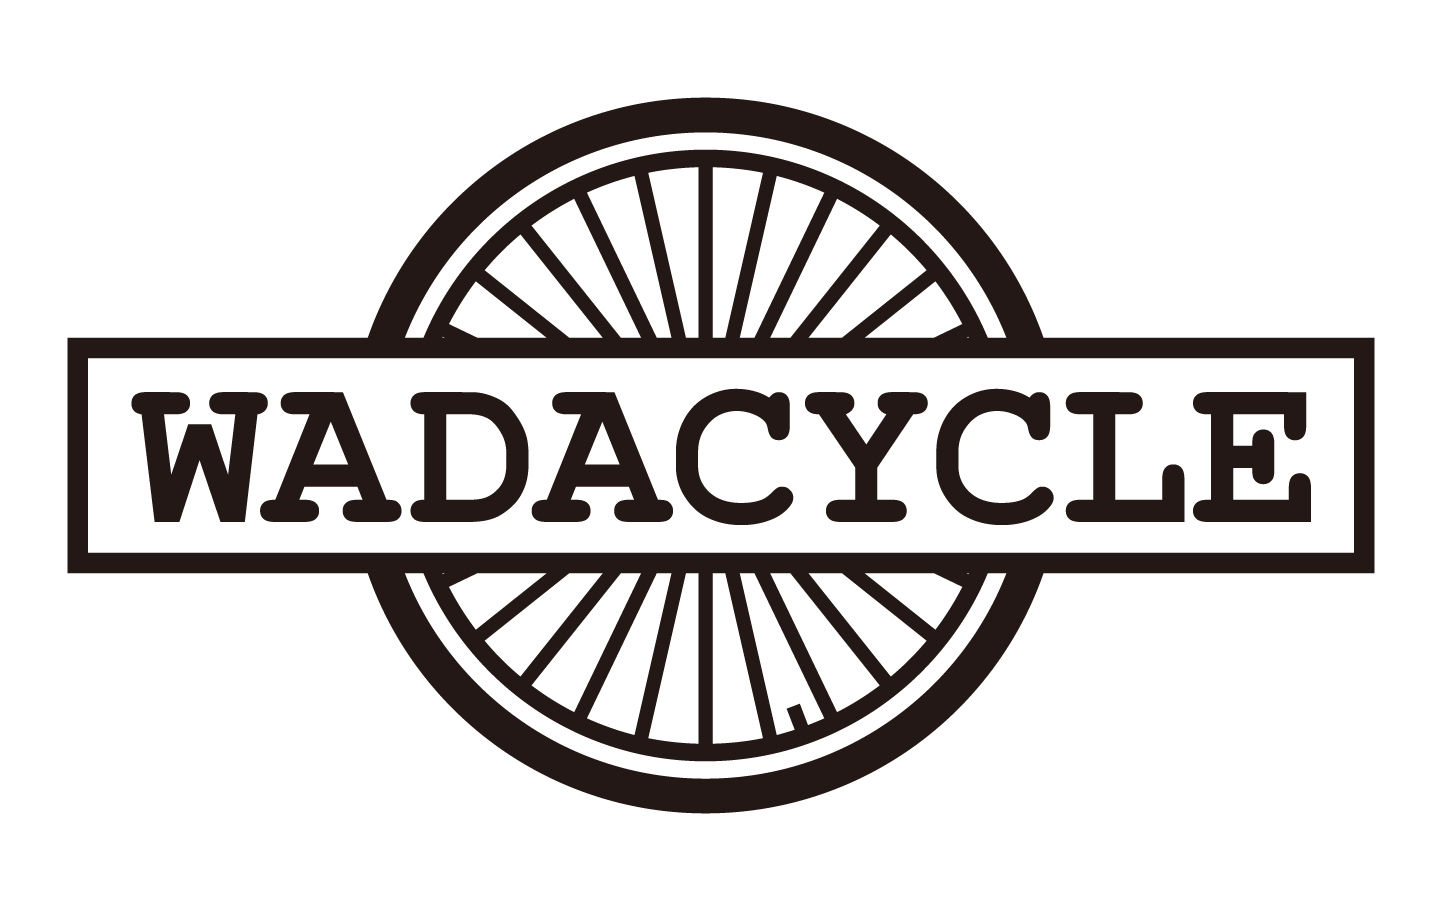 WADACYCLE online store